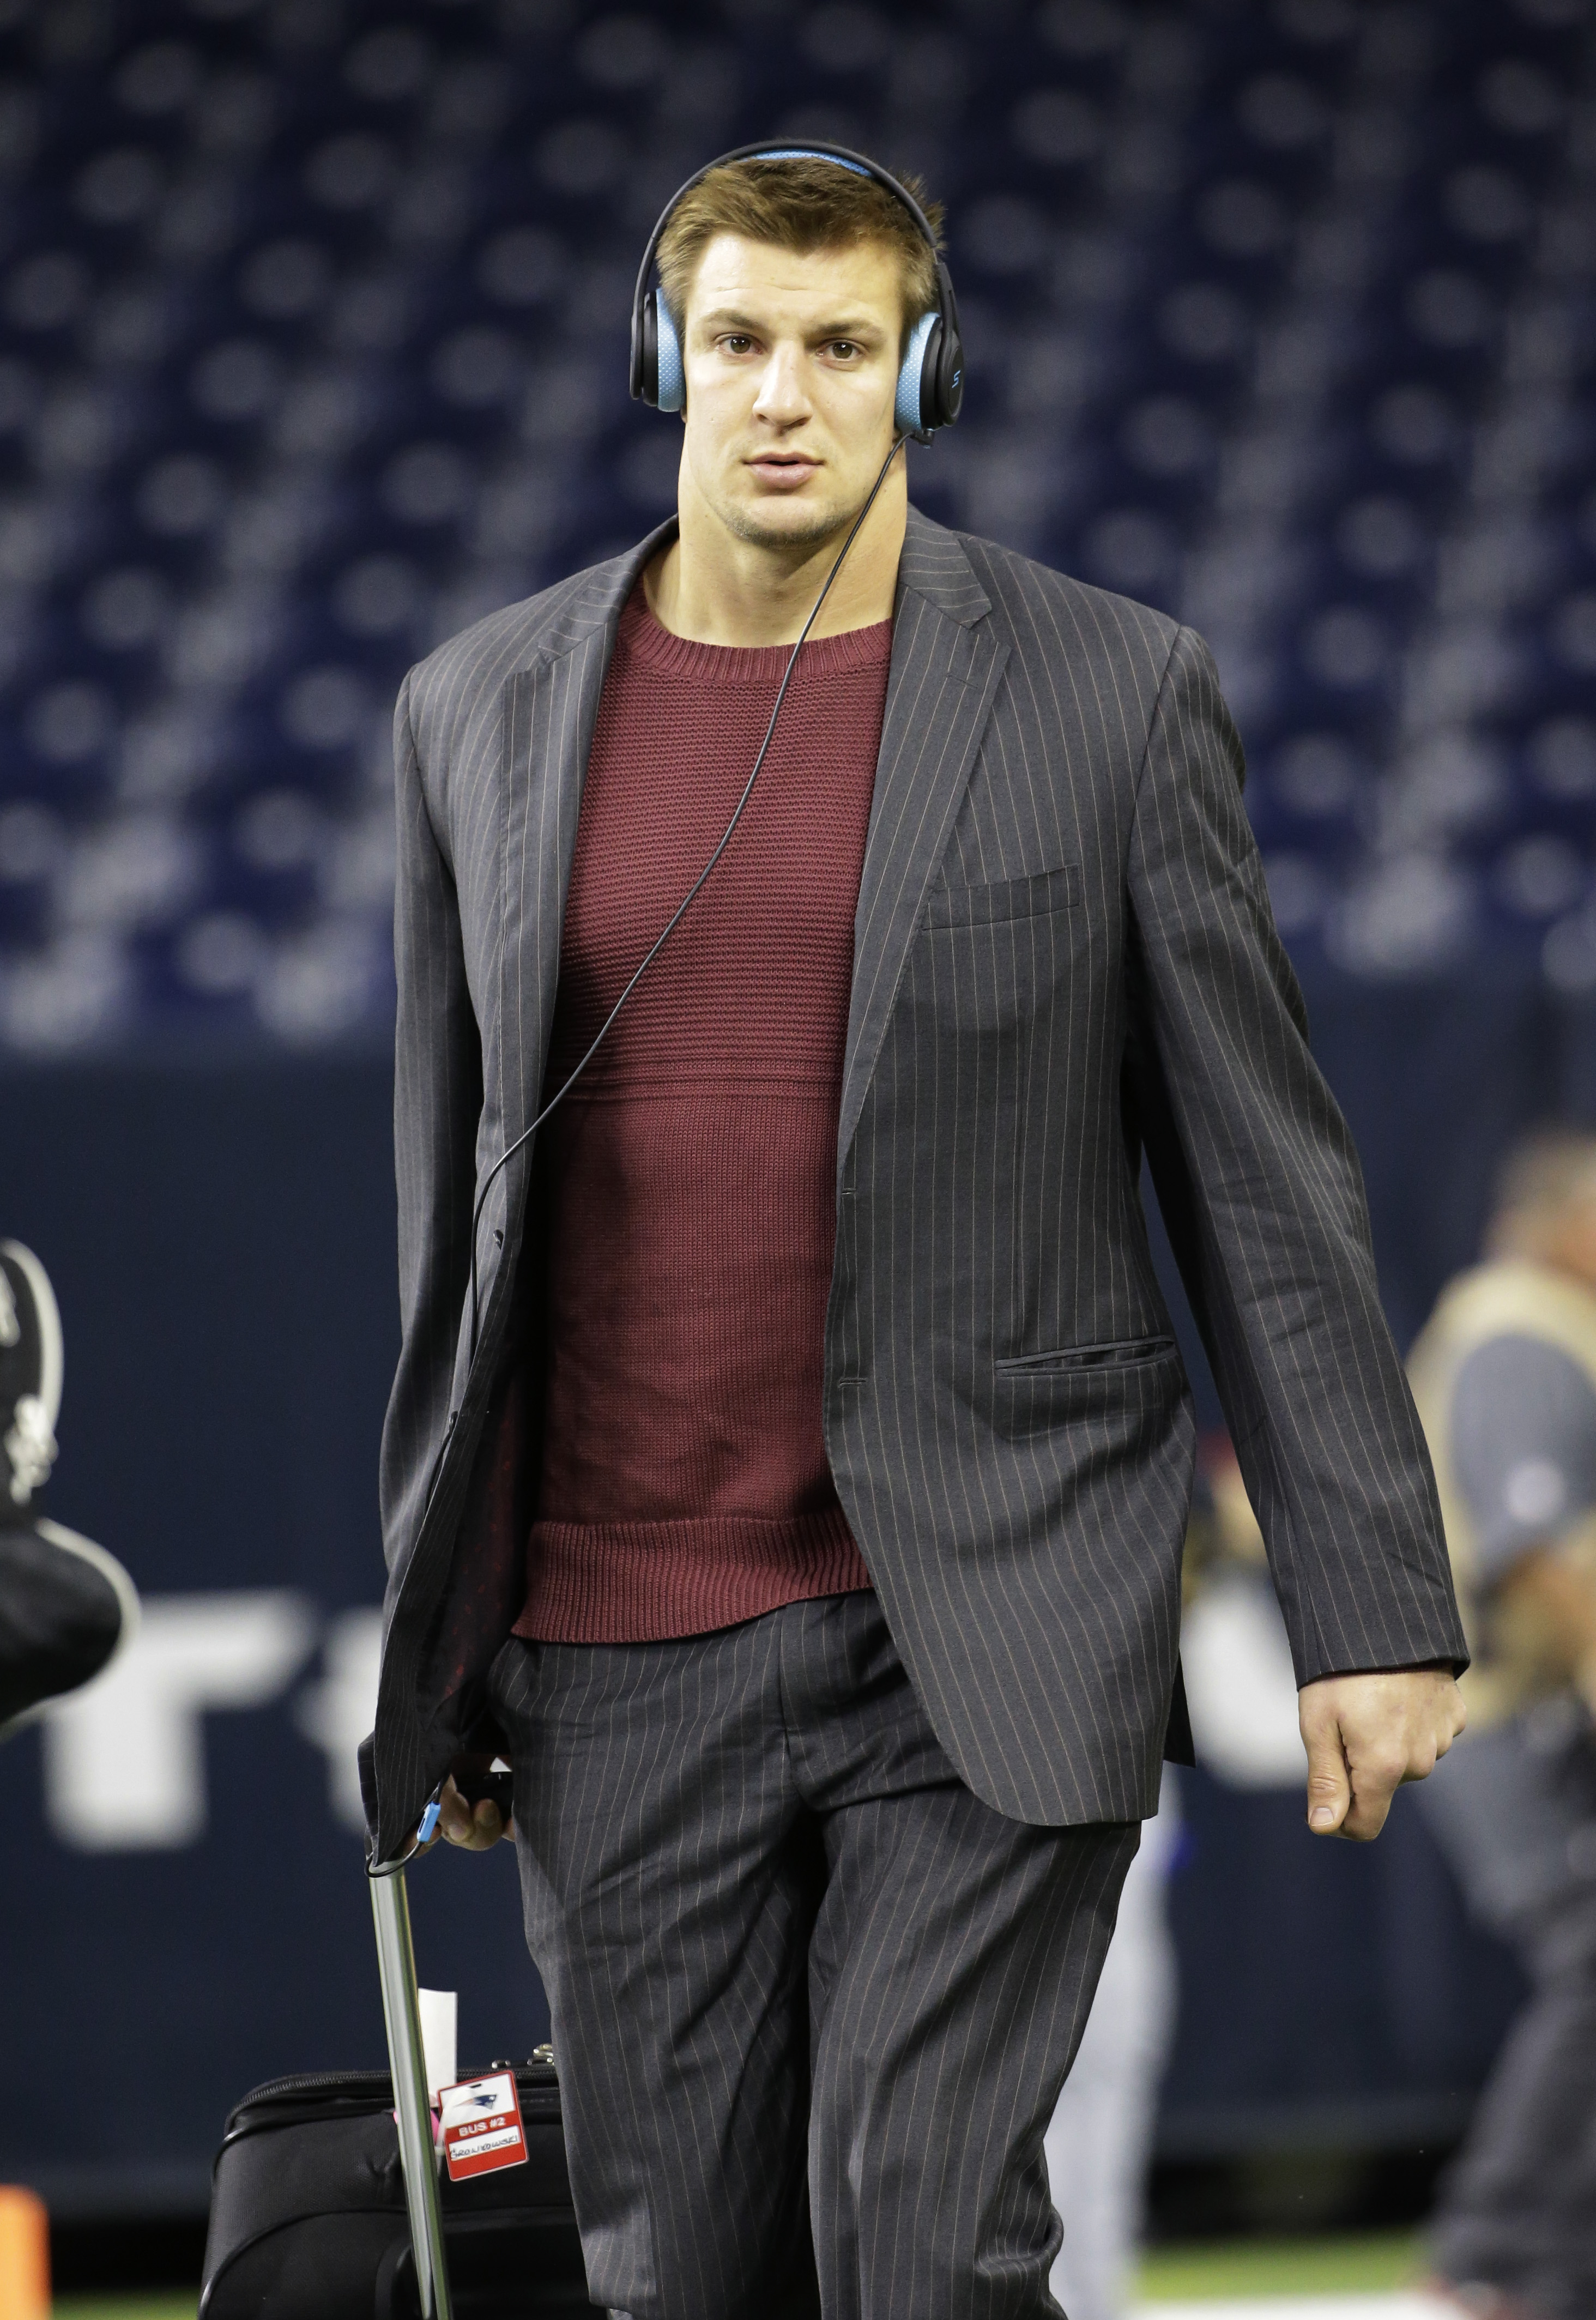 New England Patriots tight end Rob Gronkowski arrives at NRG Stadium before an NFL football game against the Houston Texans, Sunday, Dec. 13, 2015, in Houston. (David J. Phillip)